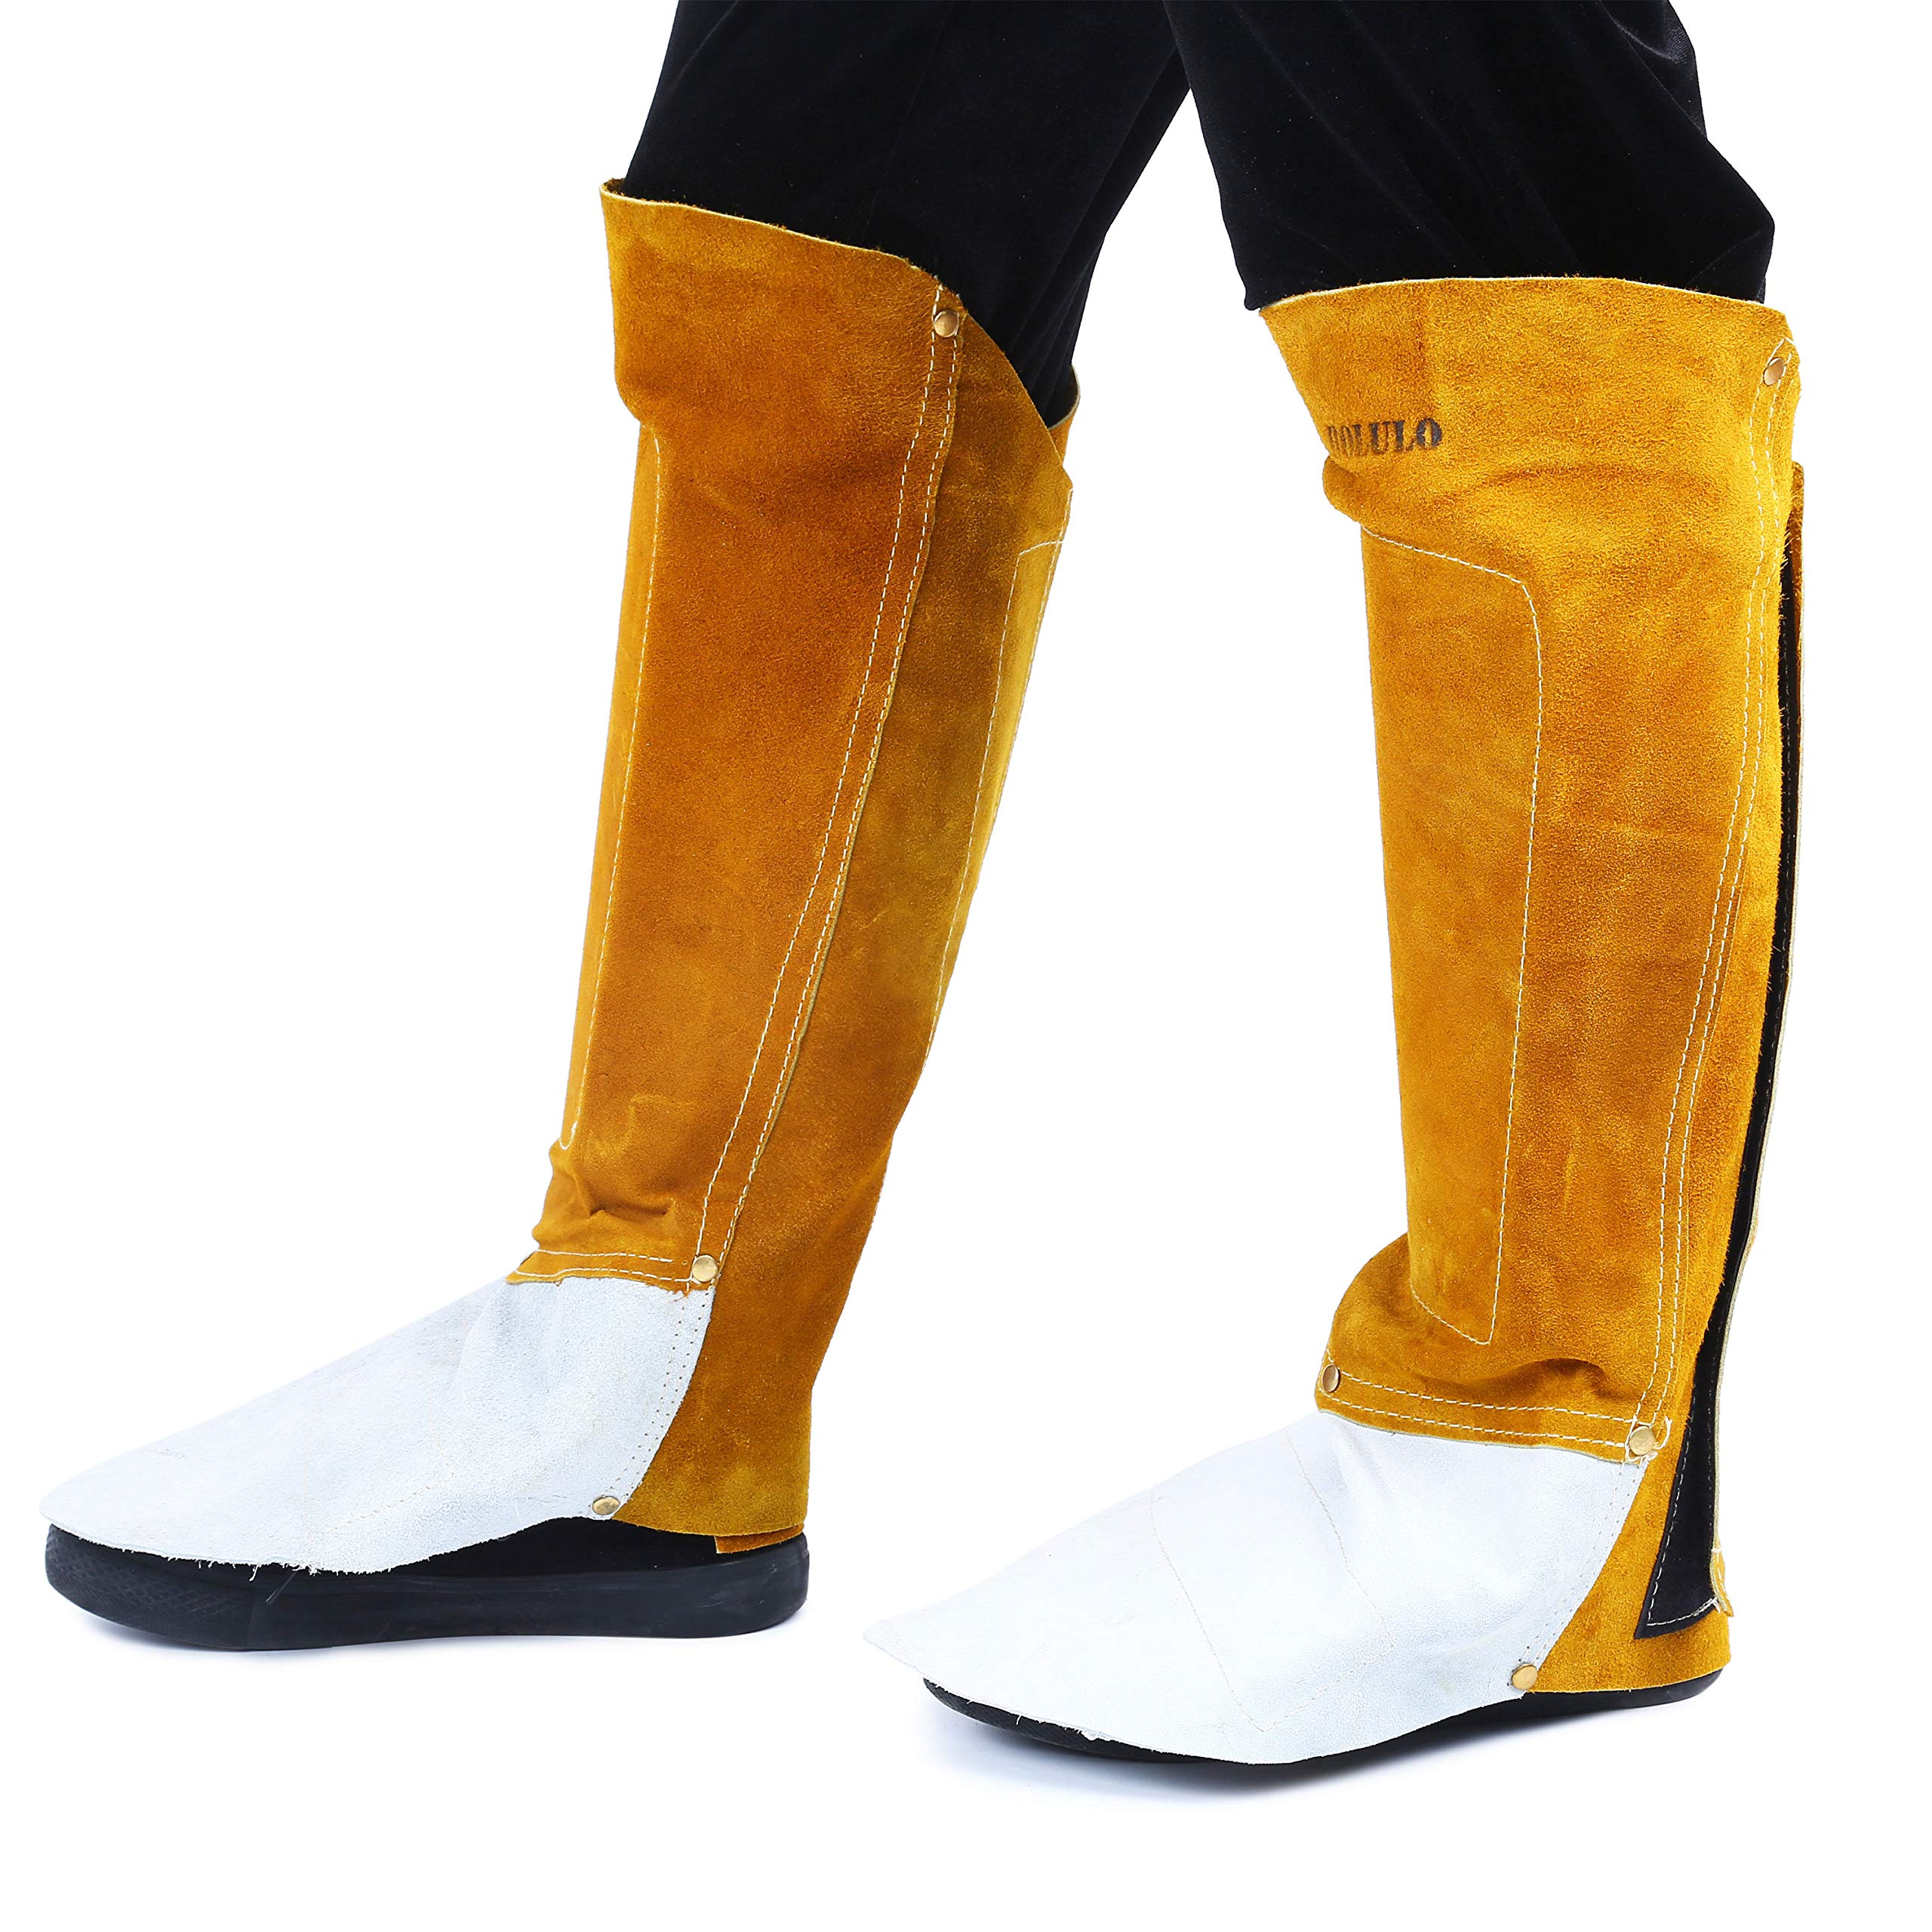 Mufy Leather Welding Spats Cover Protective Shoes Feet with Aluminum Wear Resistant,High Temperature Welding Fireproof Shoe/Boot Protectors